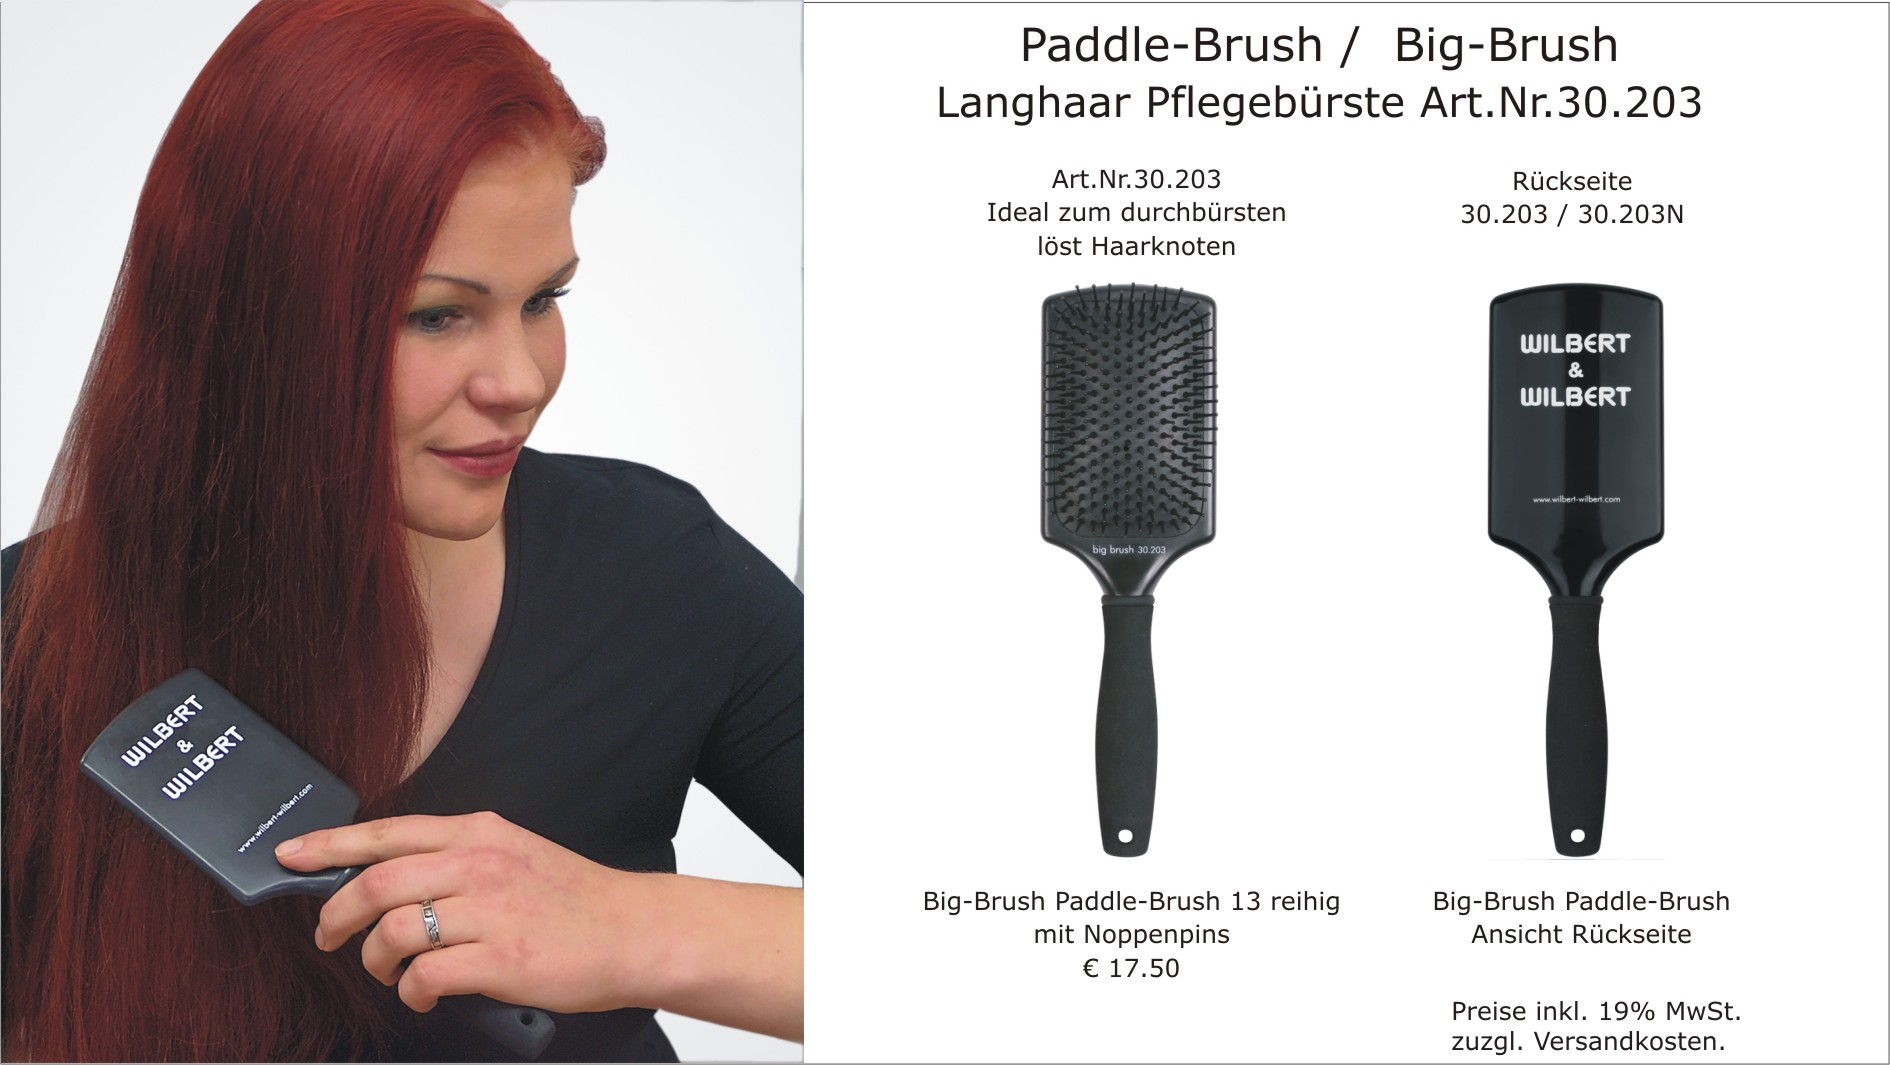 Paddle Brush / Big Brush - Art.Nr.:30.203